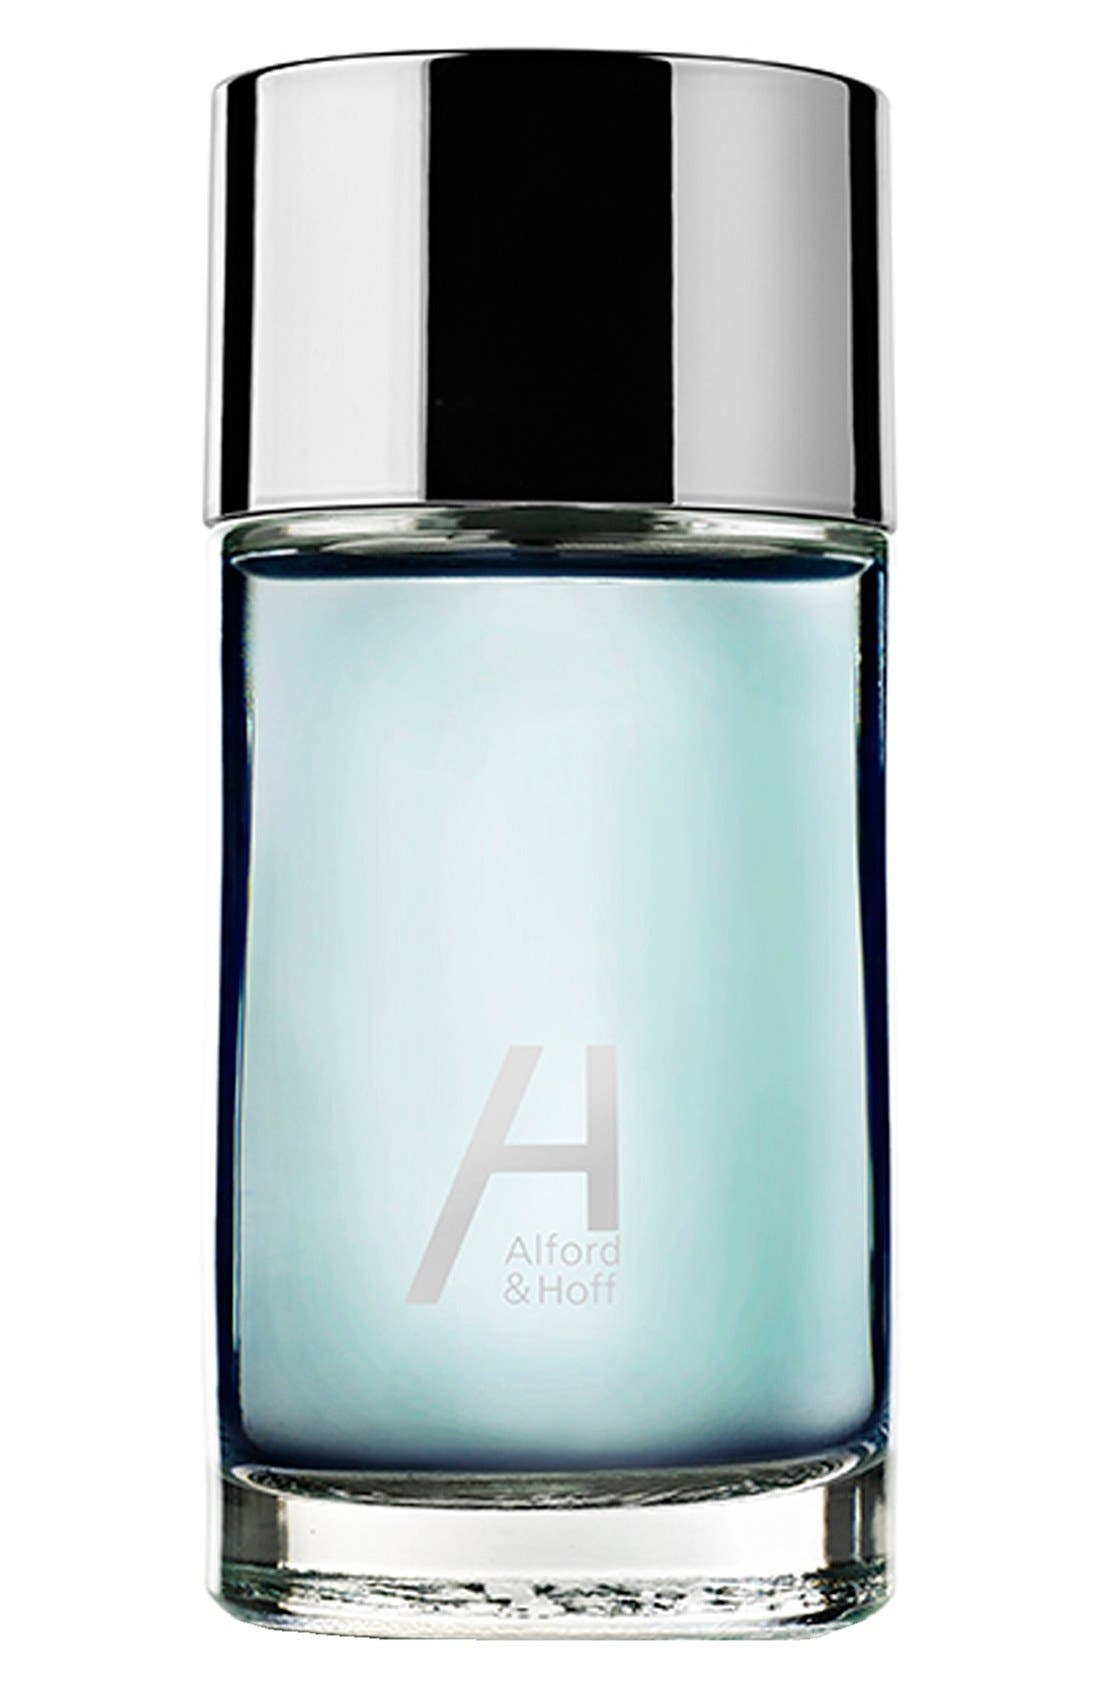 Alford & Hoff 'No.2' Fragrance